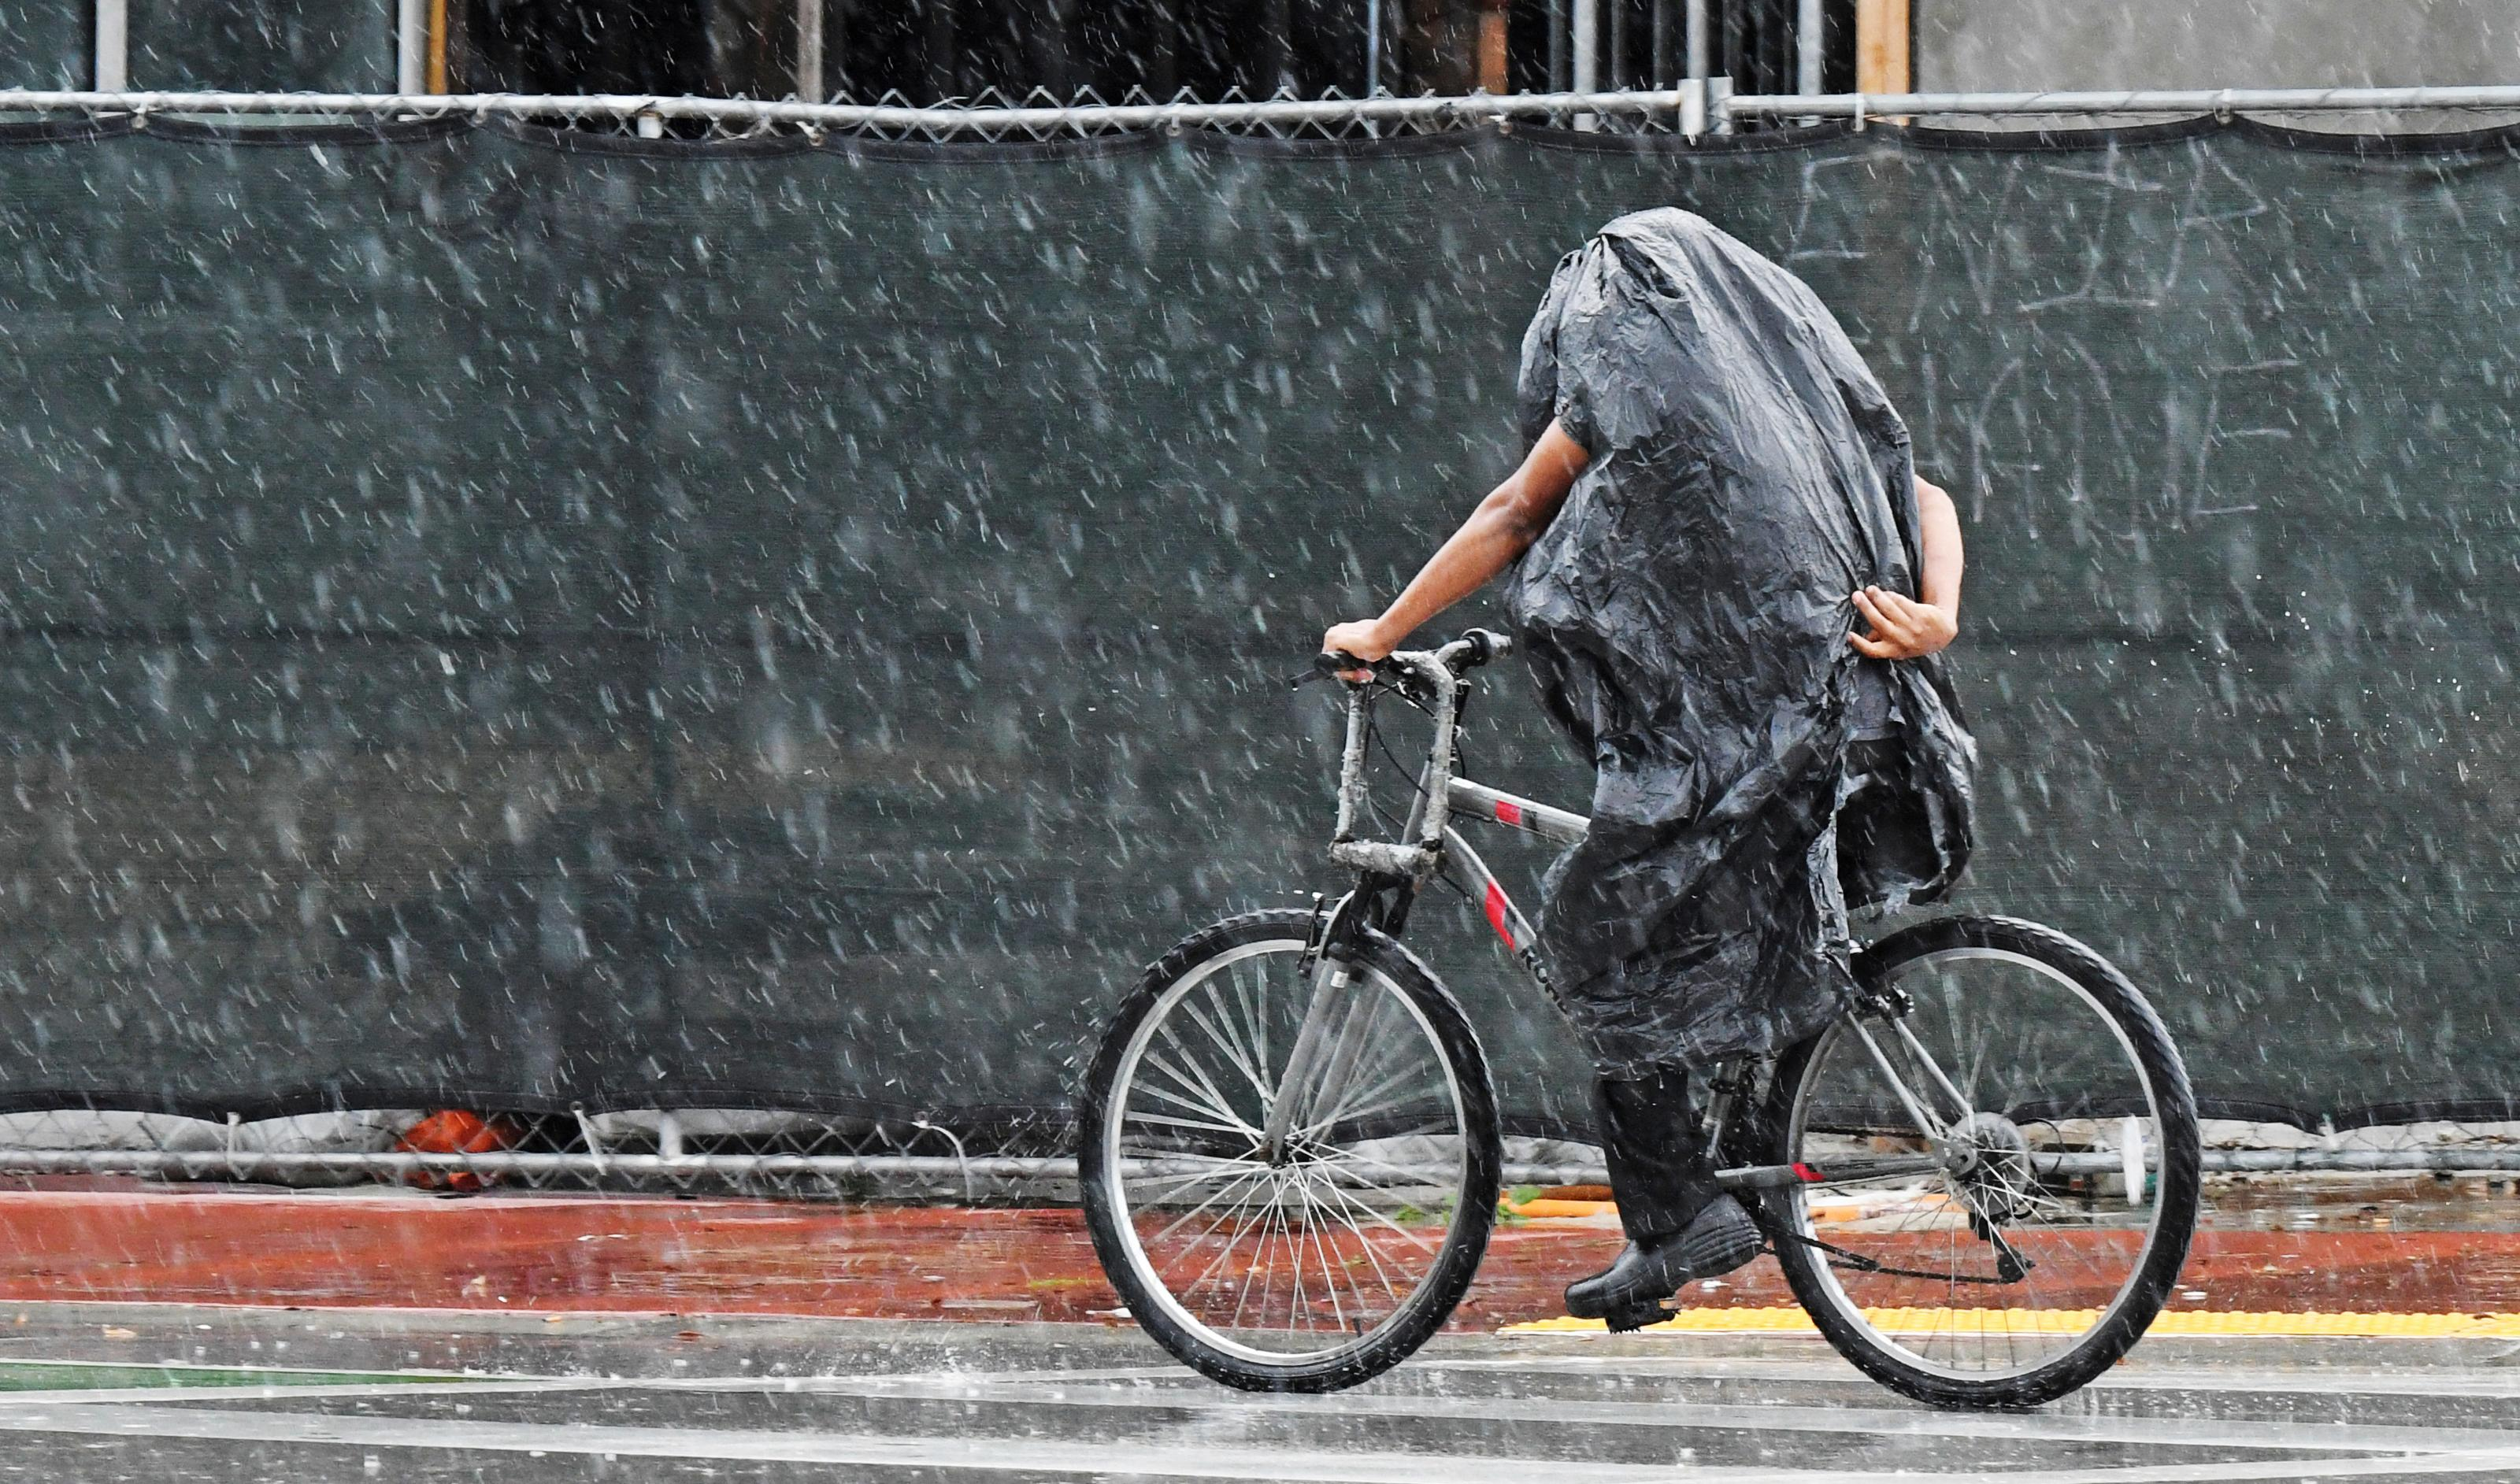 A cyclist tries to stay dry along Collins Ave. in Miami Beach, Fla., Friday, May 25, 2018. Rain from Subtropical Storm Alberto is expected to will drench the Memorial Day weekend. (Jim Rassol /South Florida Sun-Sentinel via AP)